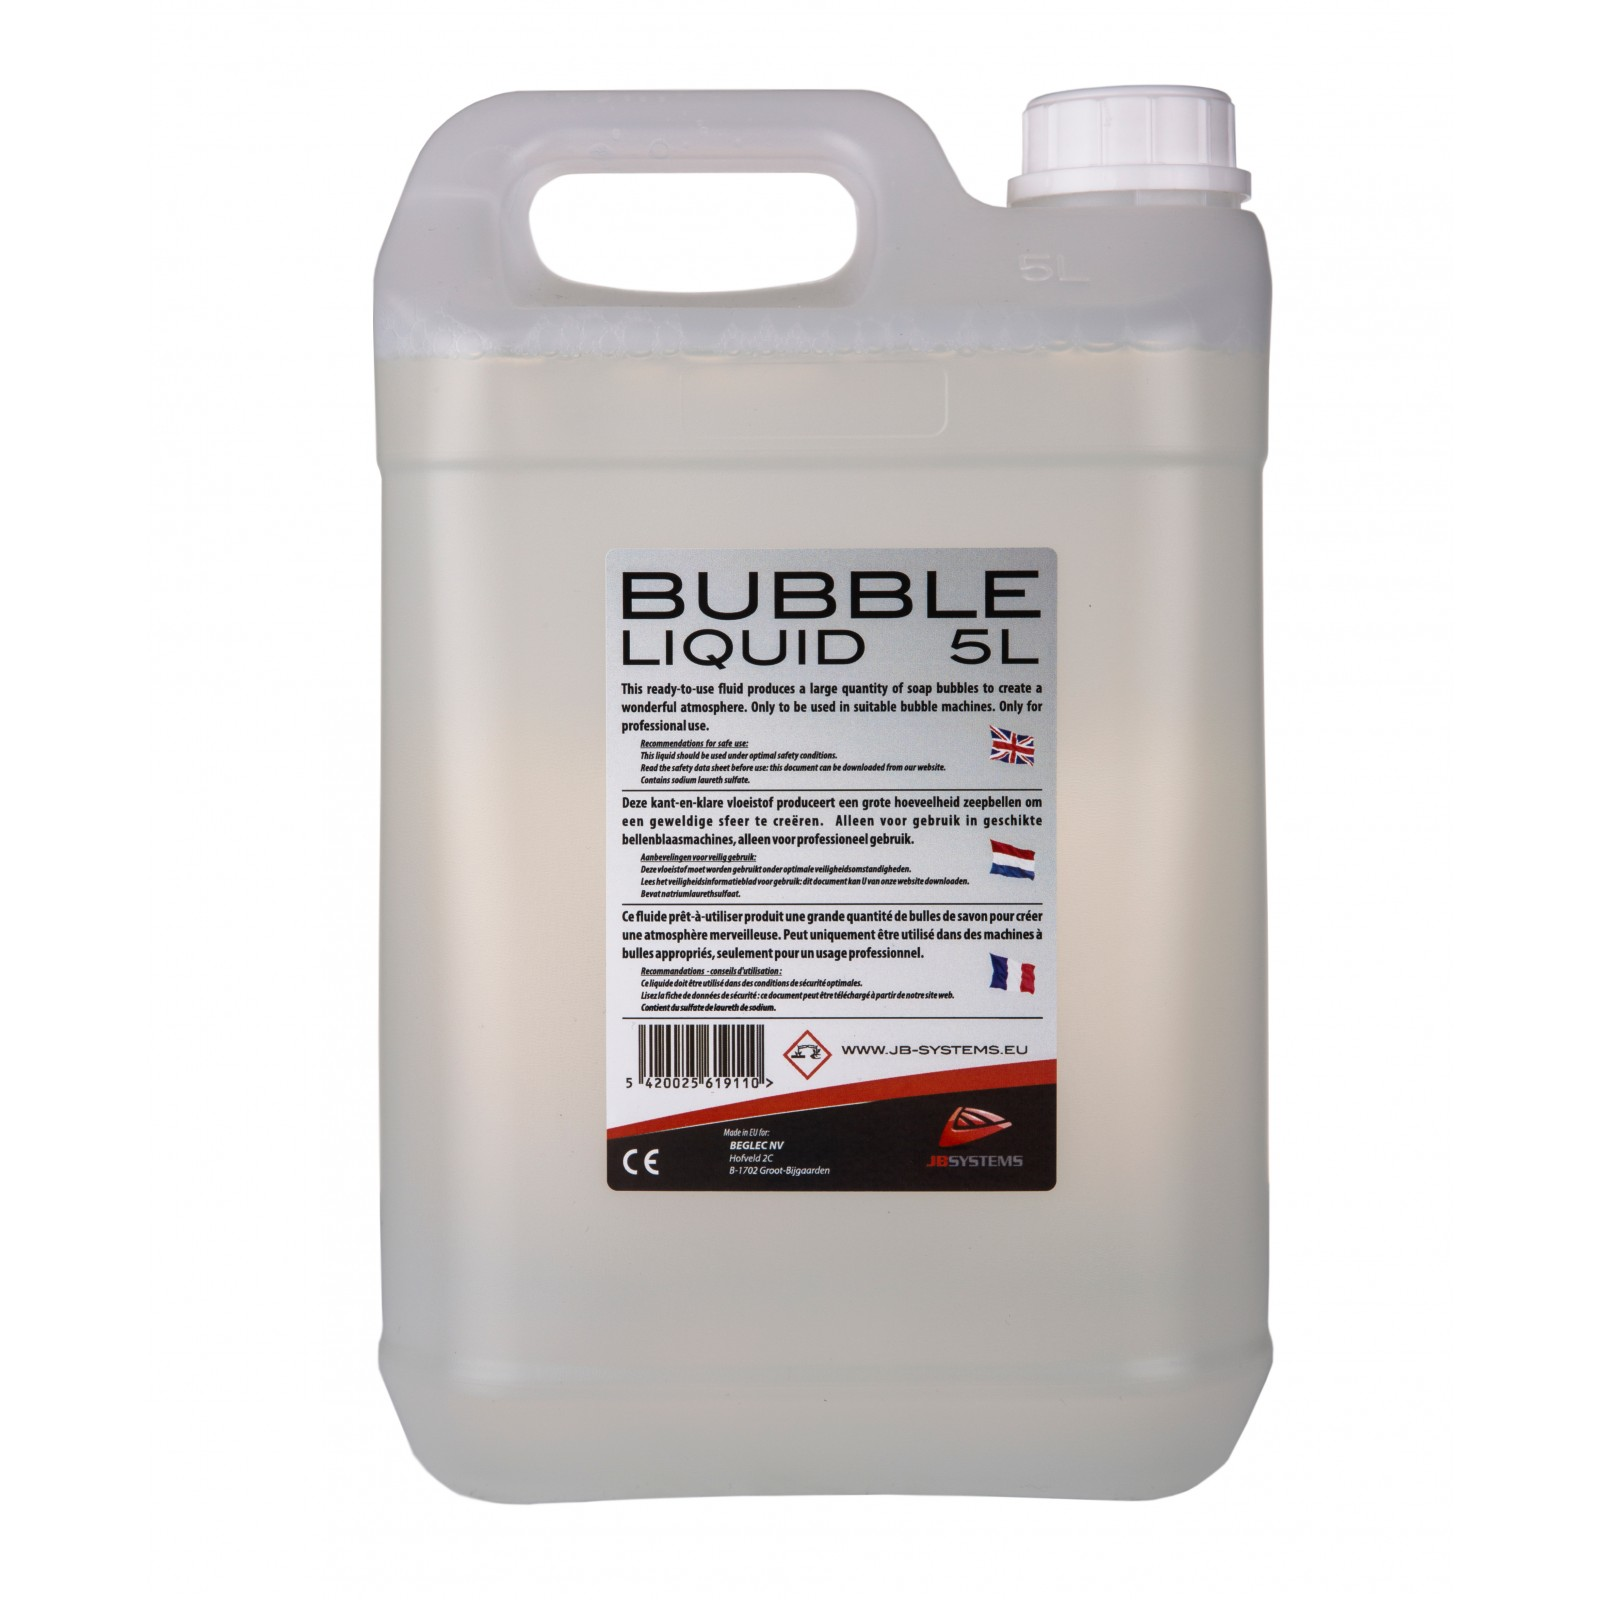 Jb Systems Bubble Liquid 5l